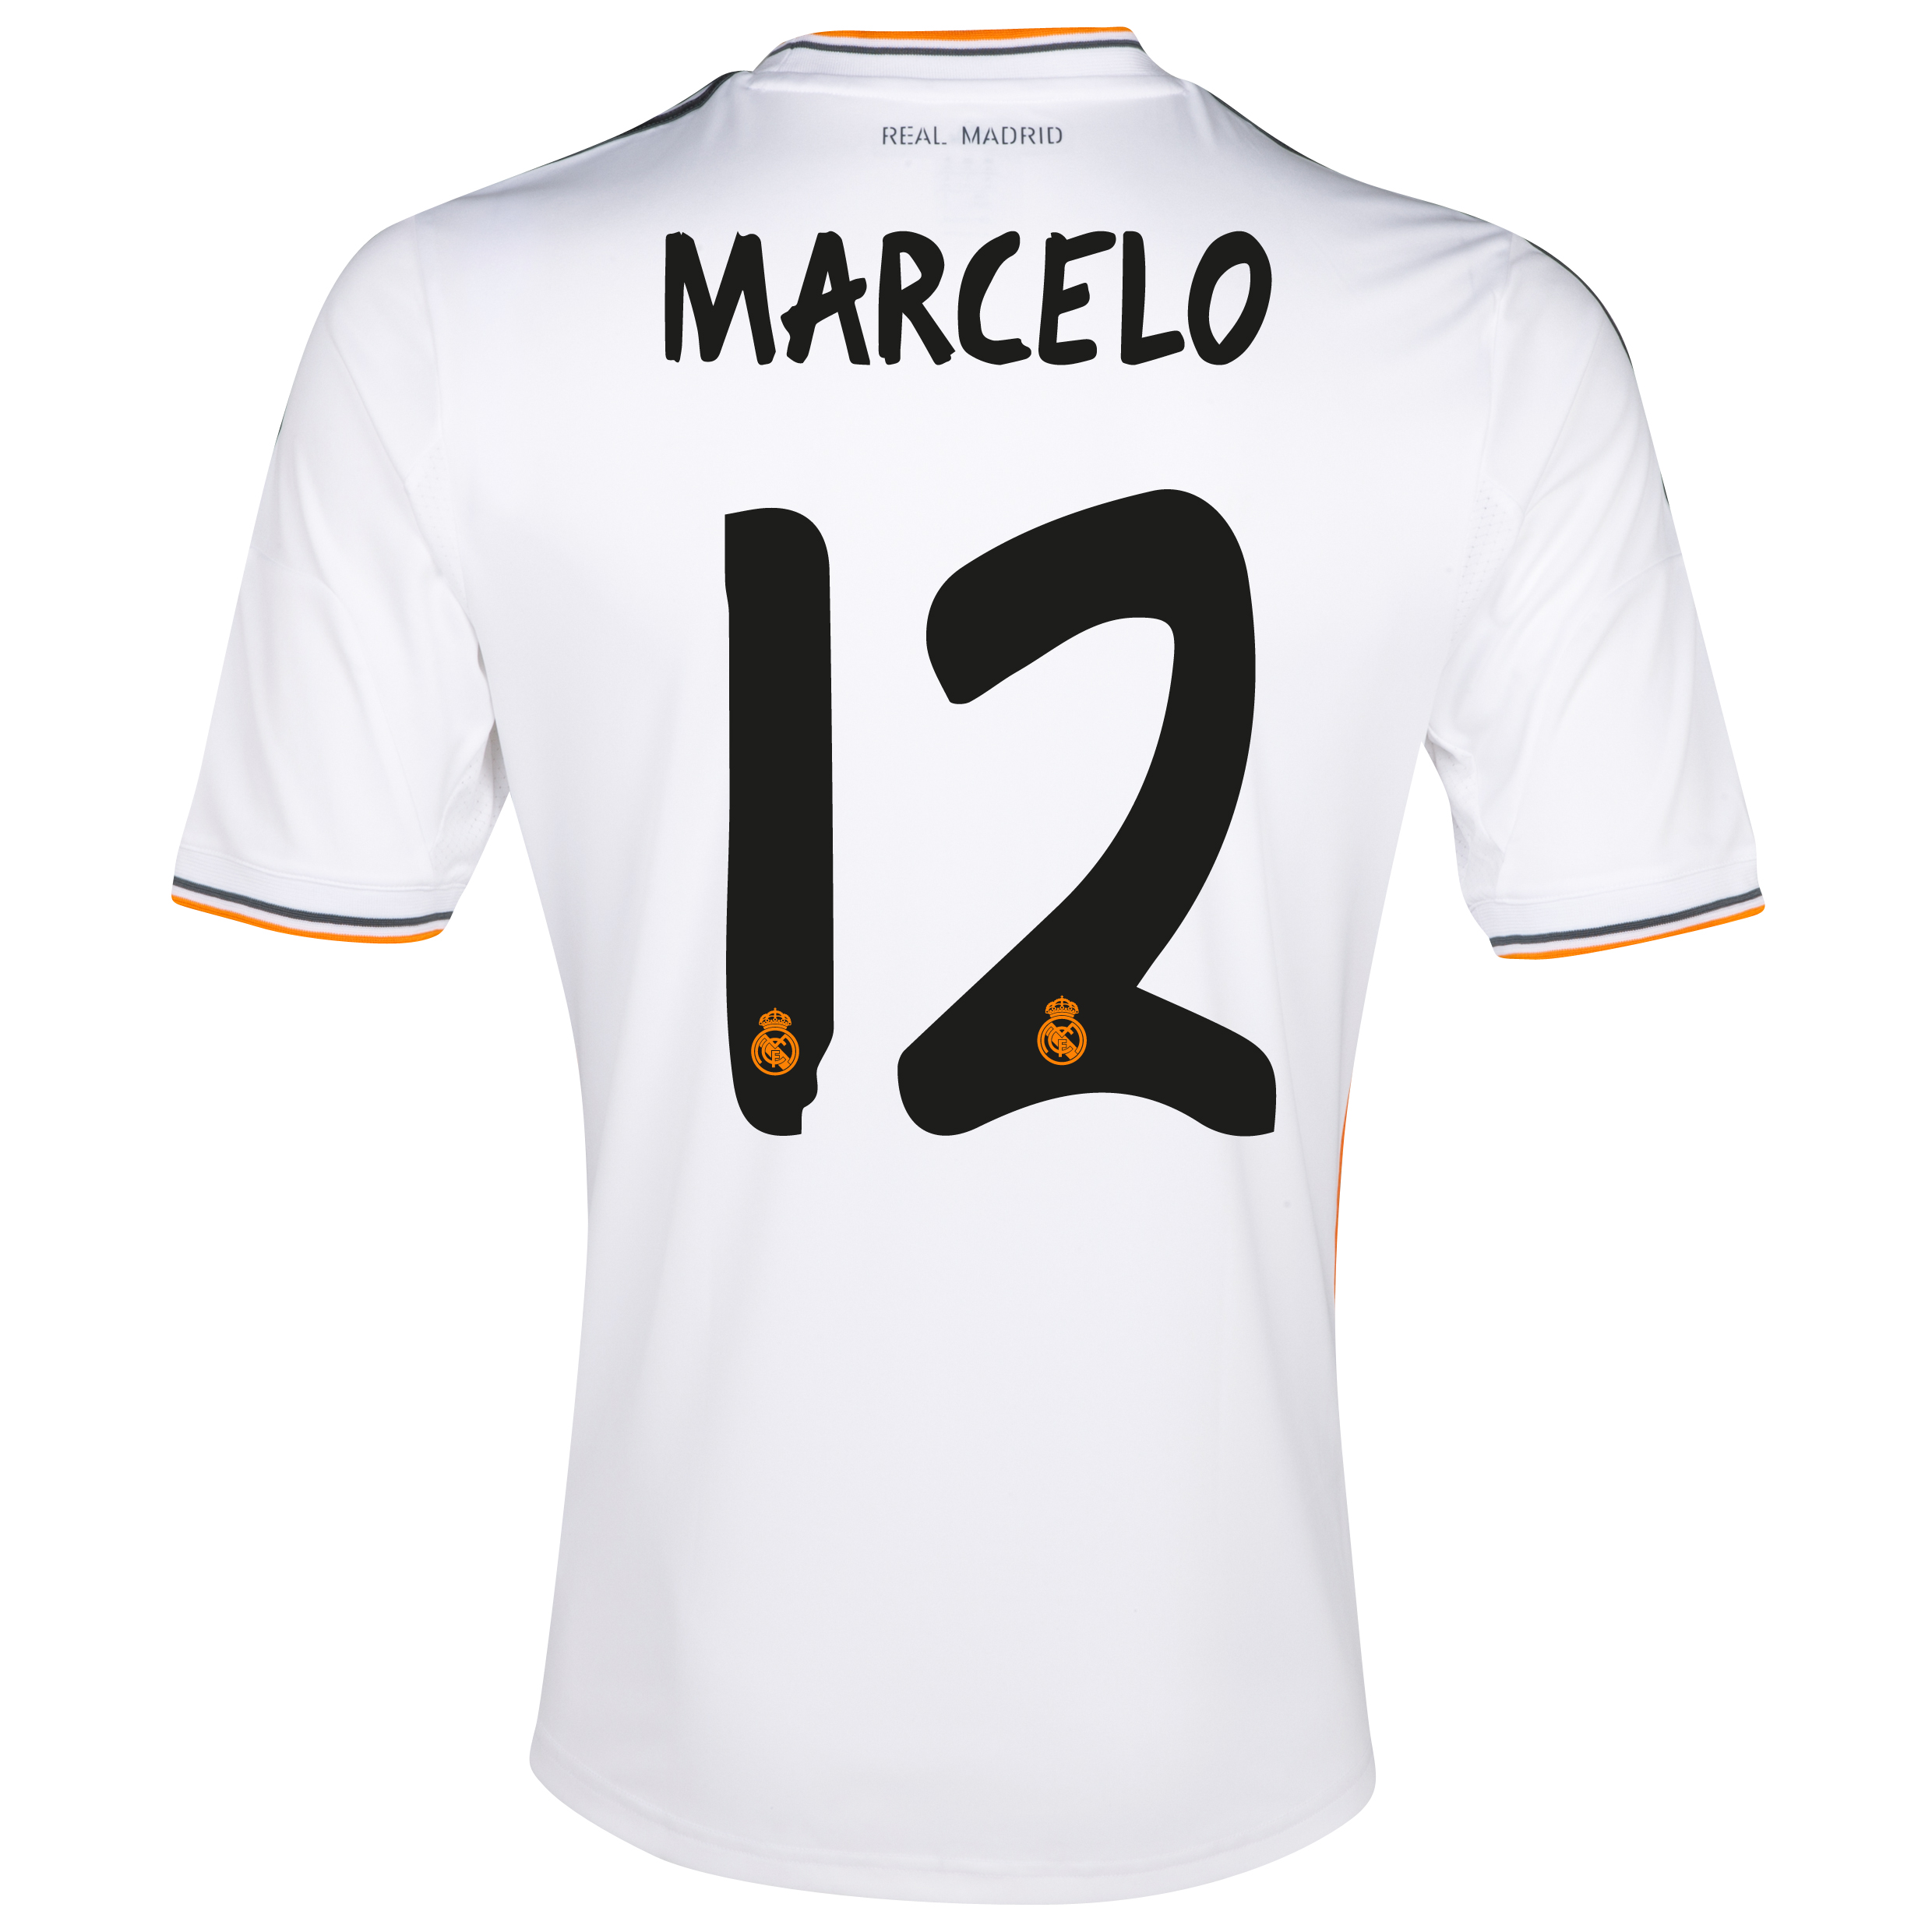 Real Madrid Home Shirt 2013/14 - Kids with Marcelo 12 printing